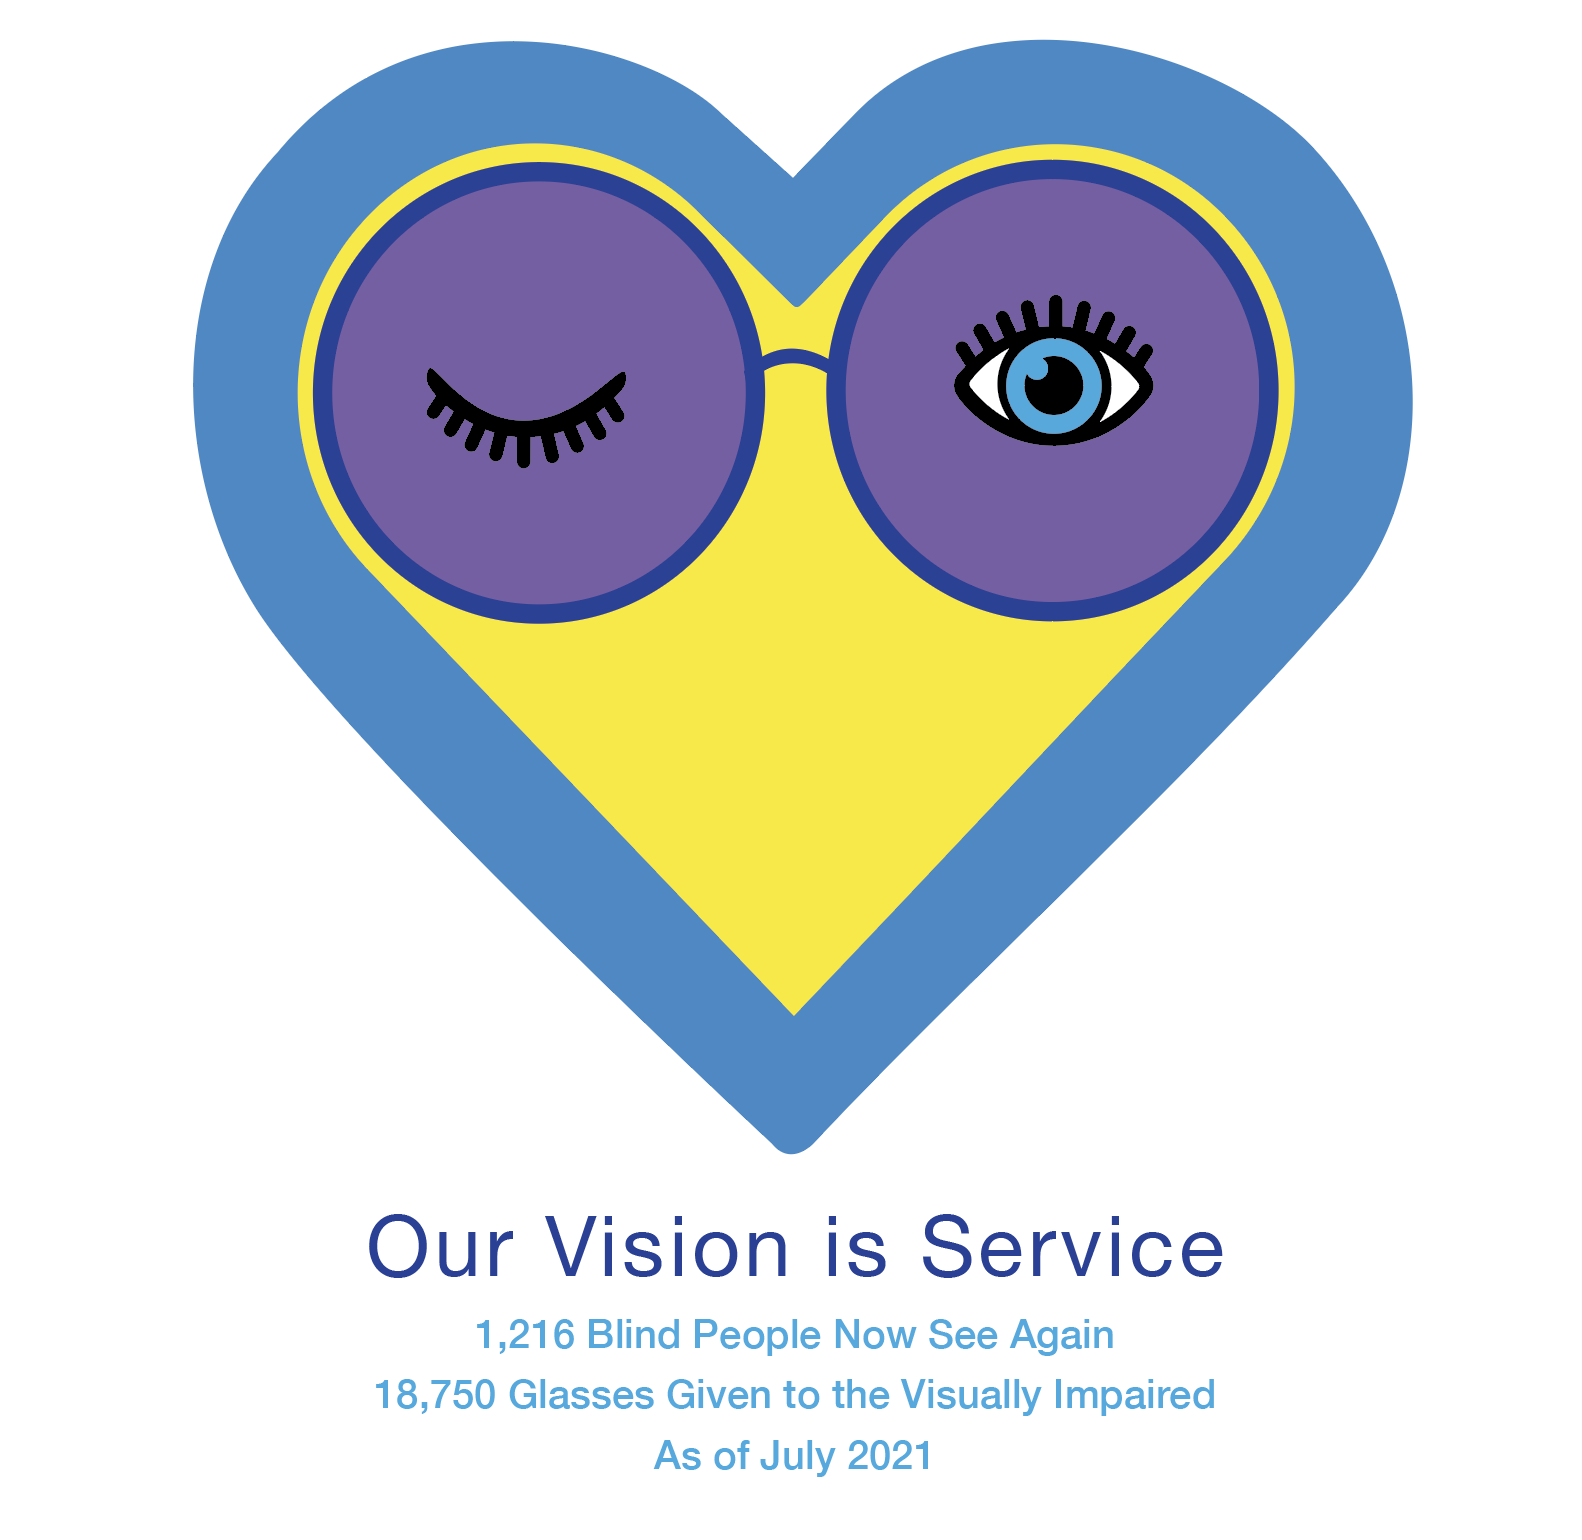 Our Vision Is Service Heart Logo